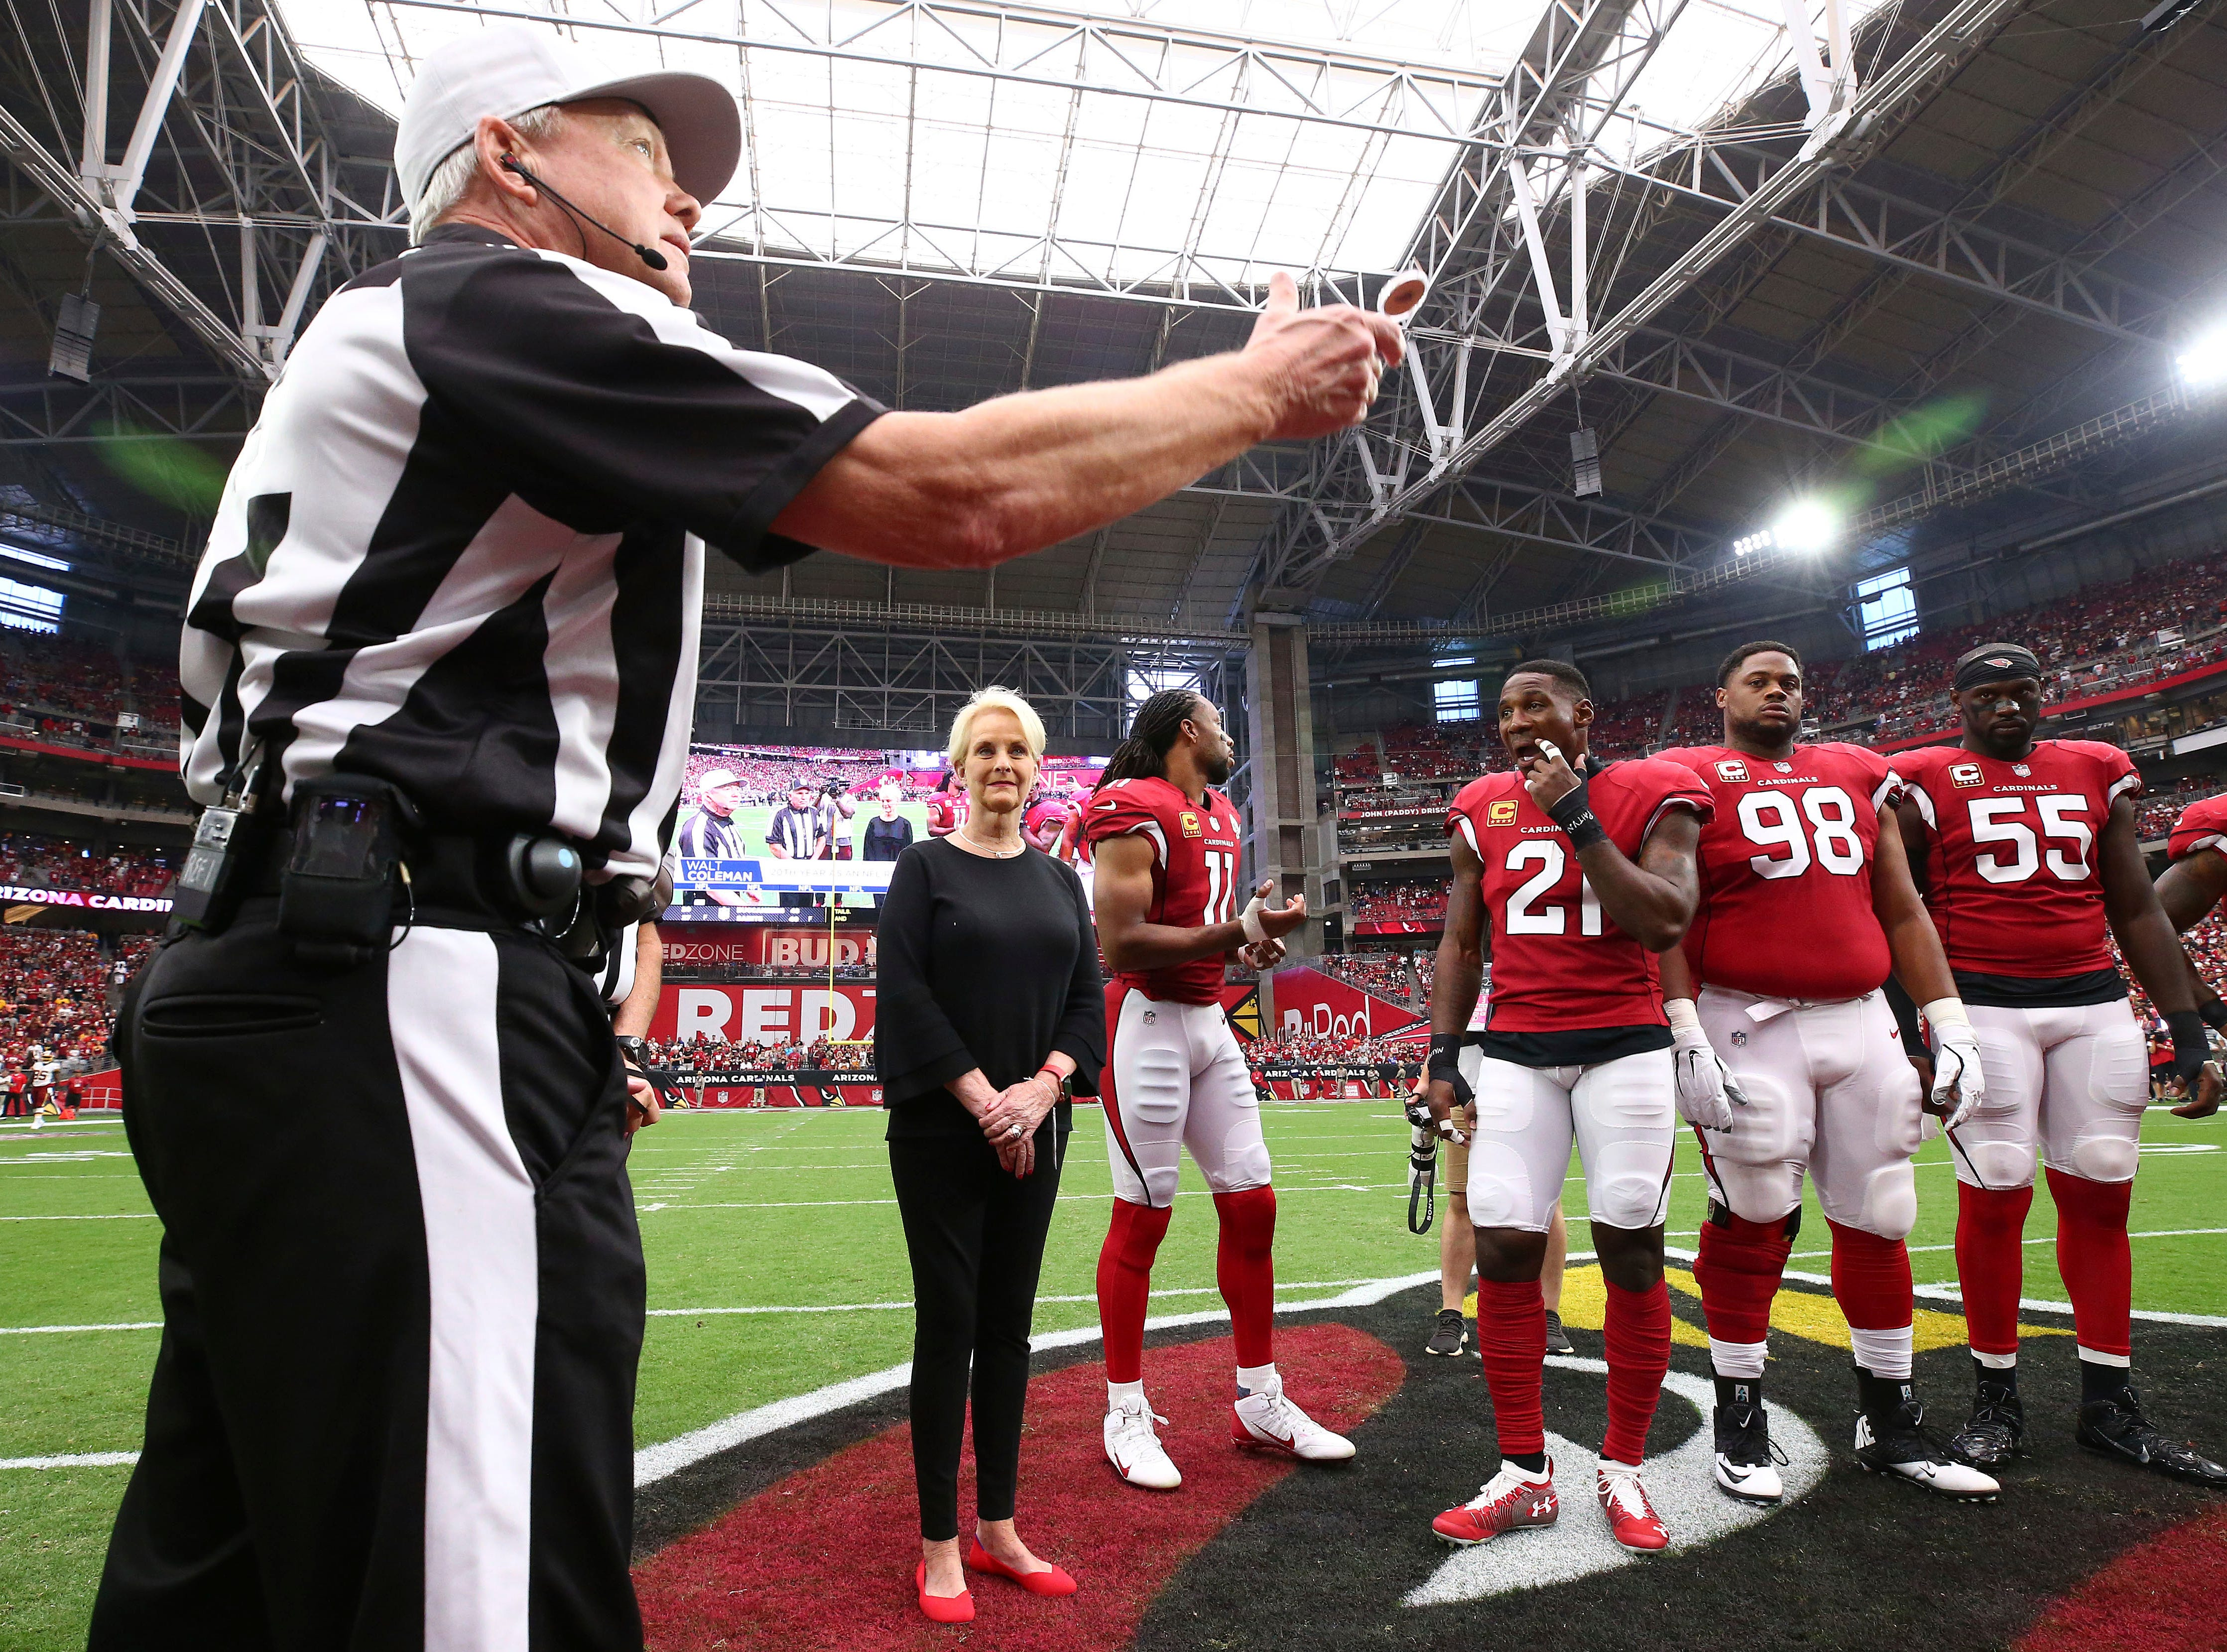 Cindy McCain, wife of the late U.S. Sen. John McCain, R-Ariz., stands with Arizona Cardinals' Larry Fitzgerald (11), Patrick Peterson (21), Corey Peters (98) and Chandler Jones (55) as an honorary team captain as referee Walt Coleman tosses the coin prior to an NFL football game against the Washington Redskins,  Sept. 9, 2018, in Glendale, Ariz.